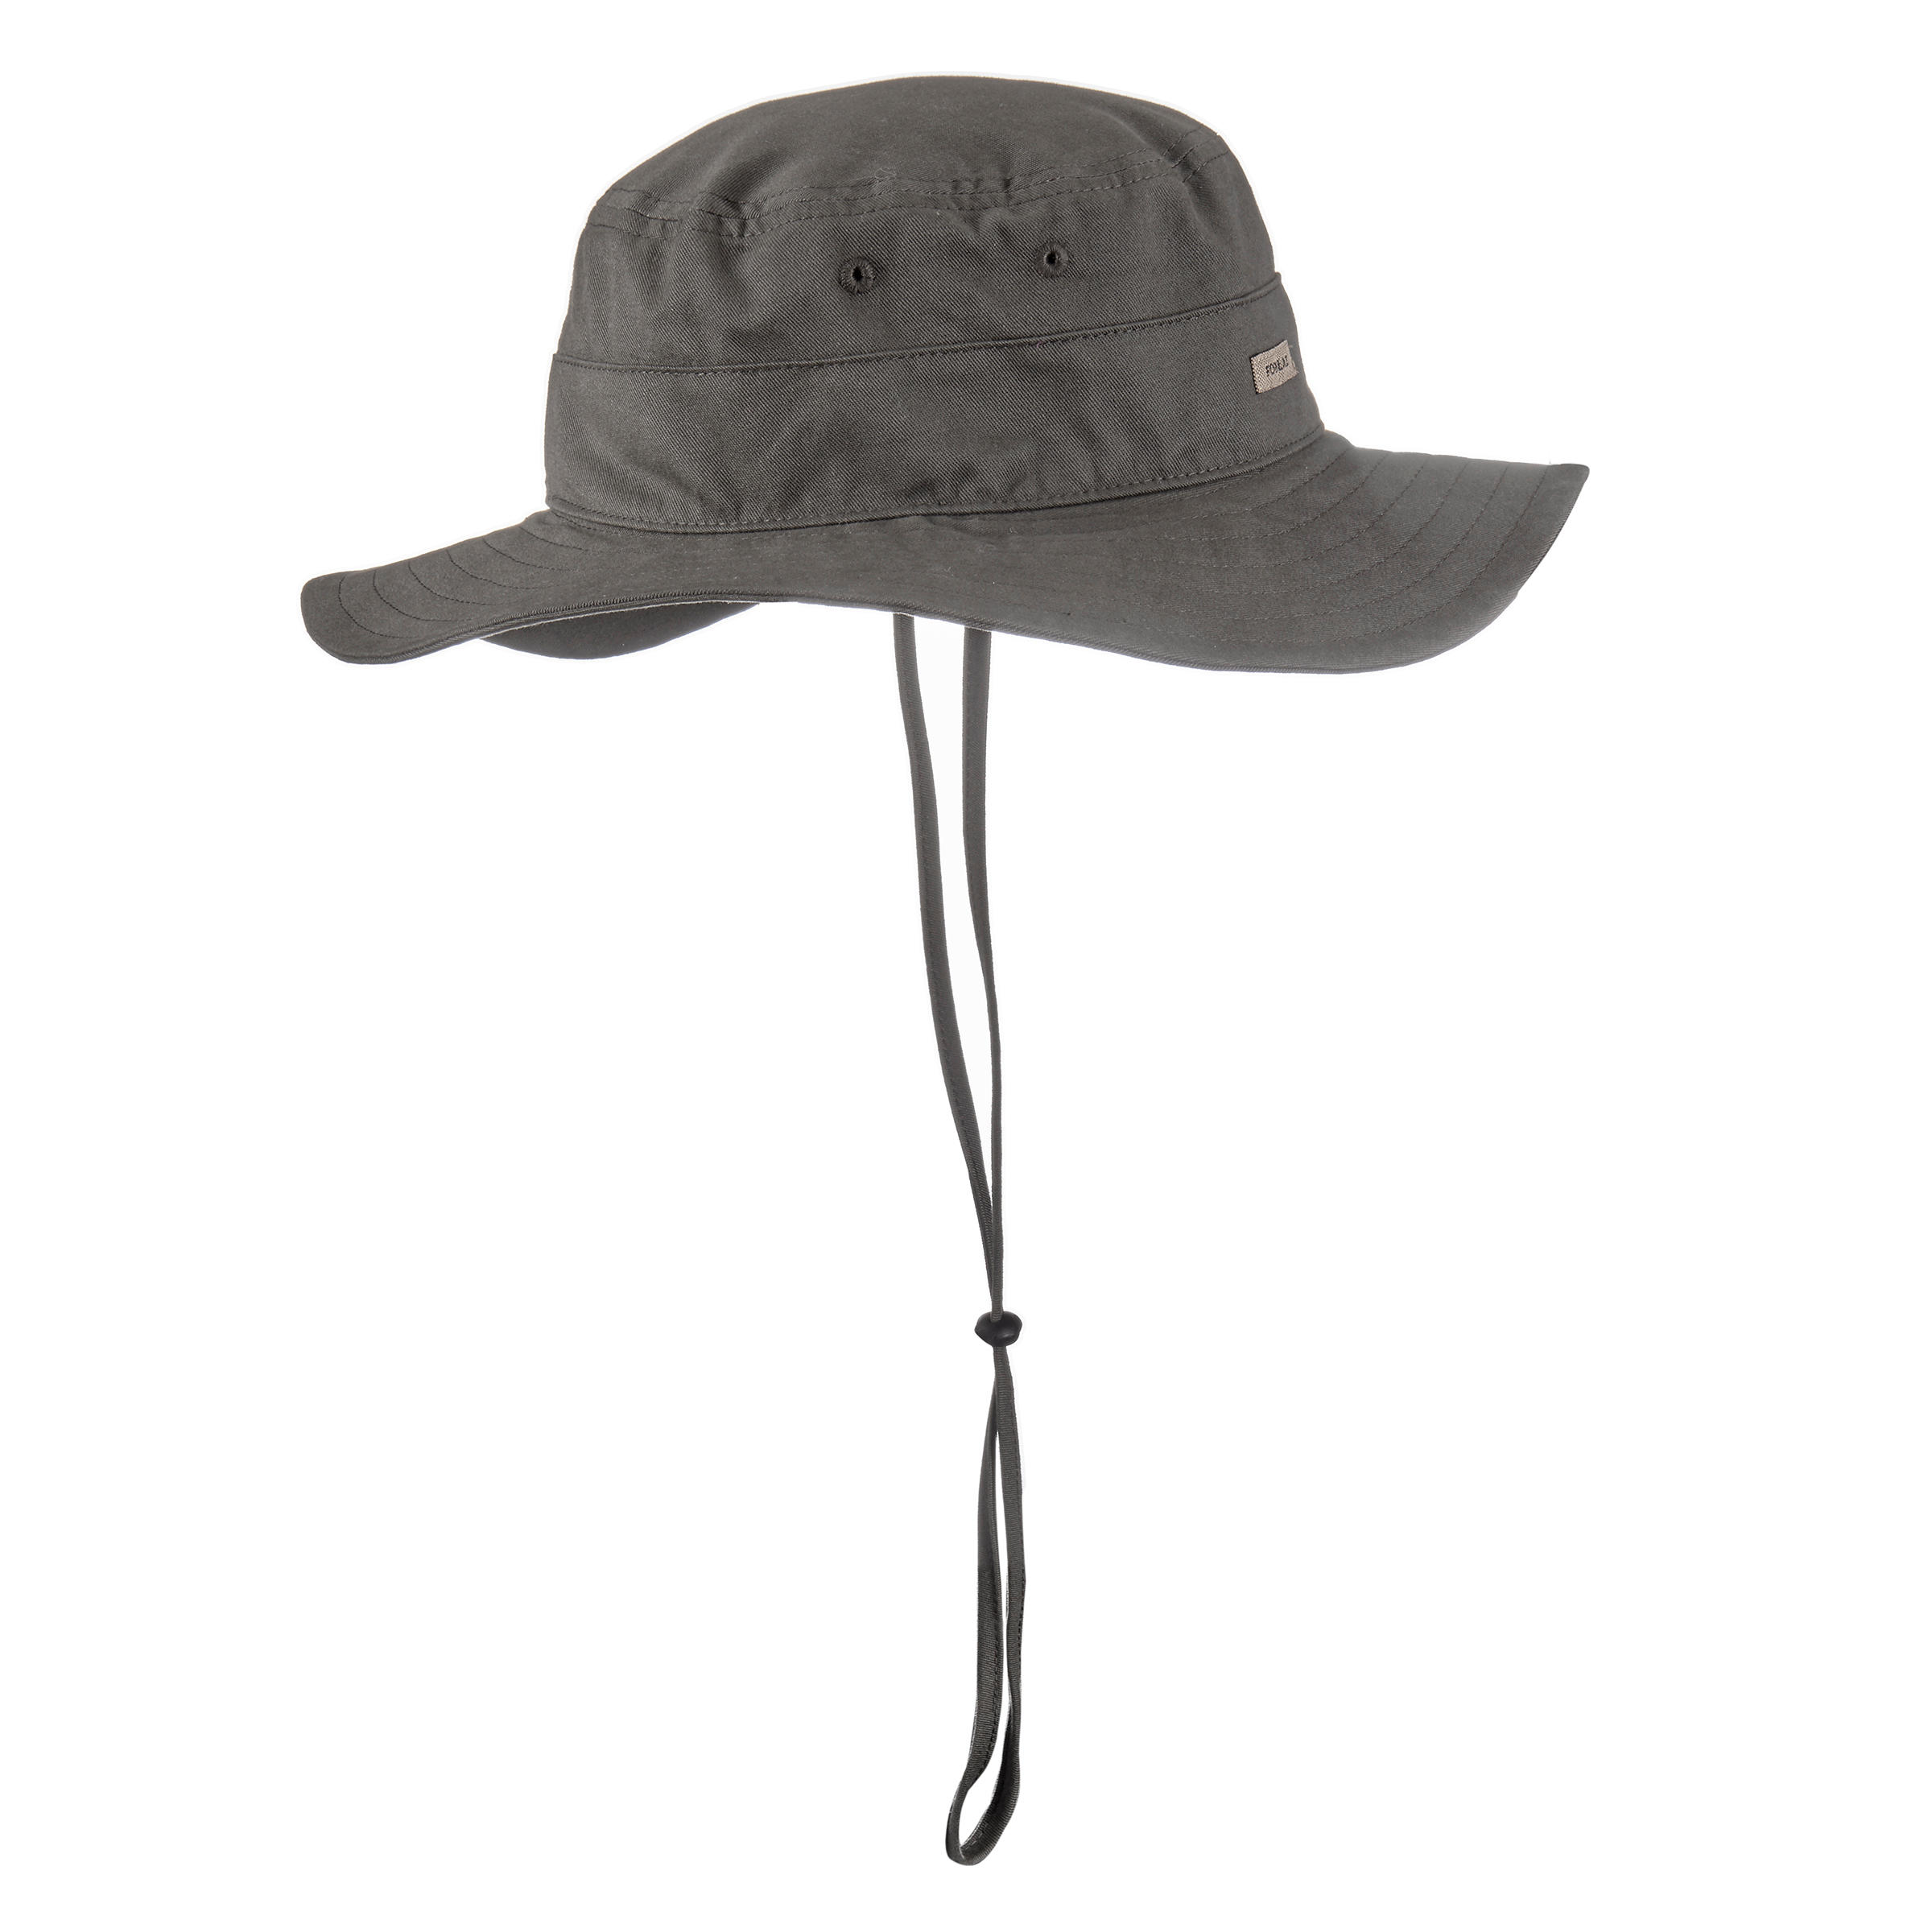 100 Khaki Hiking Hat